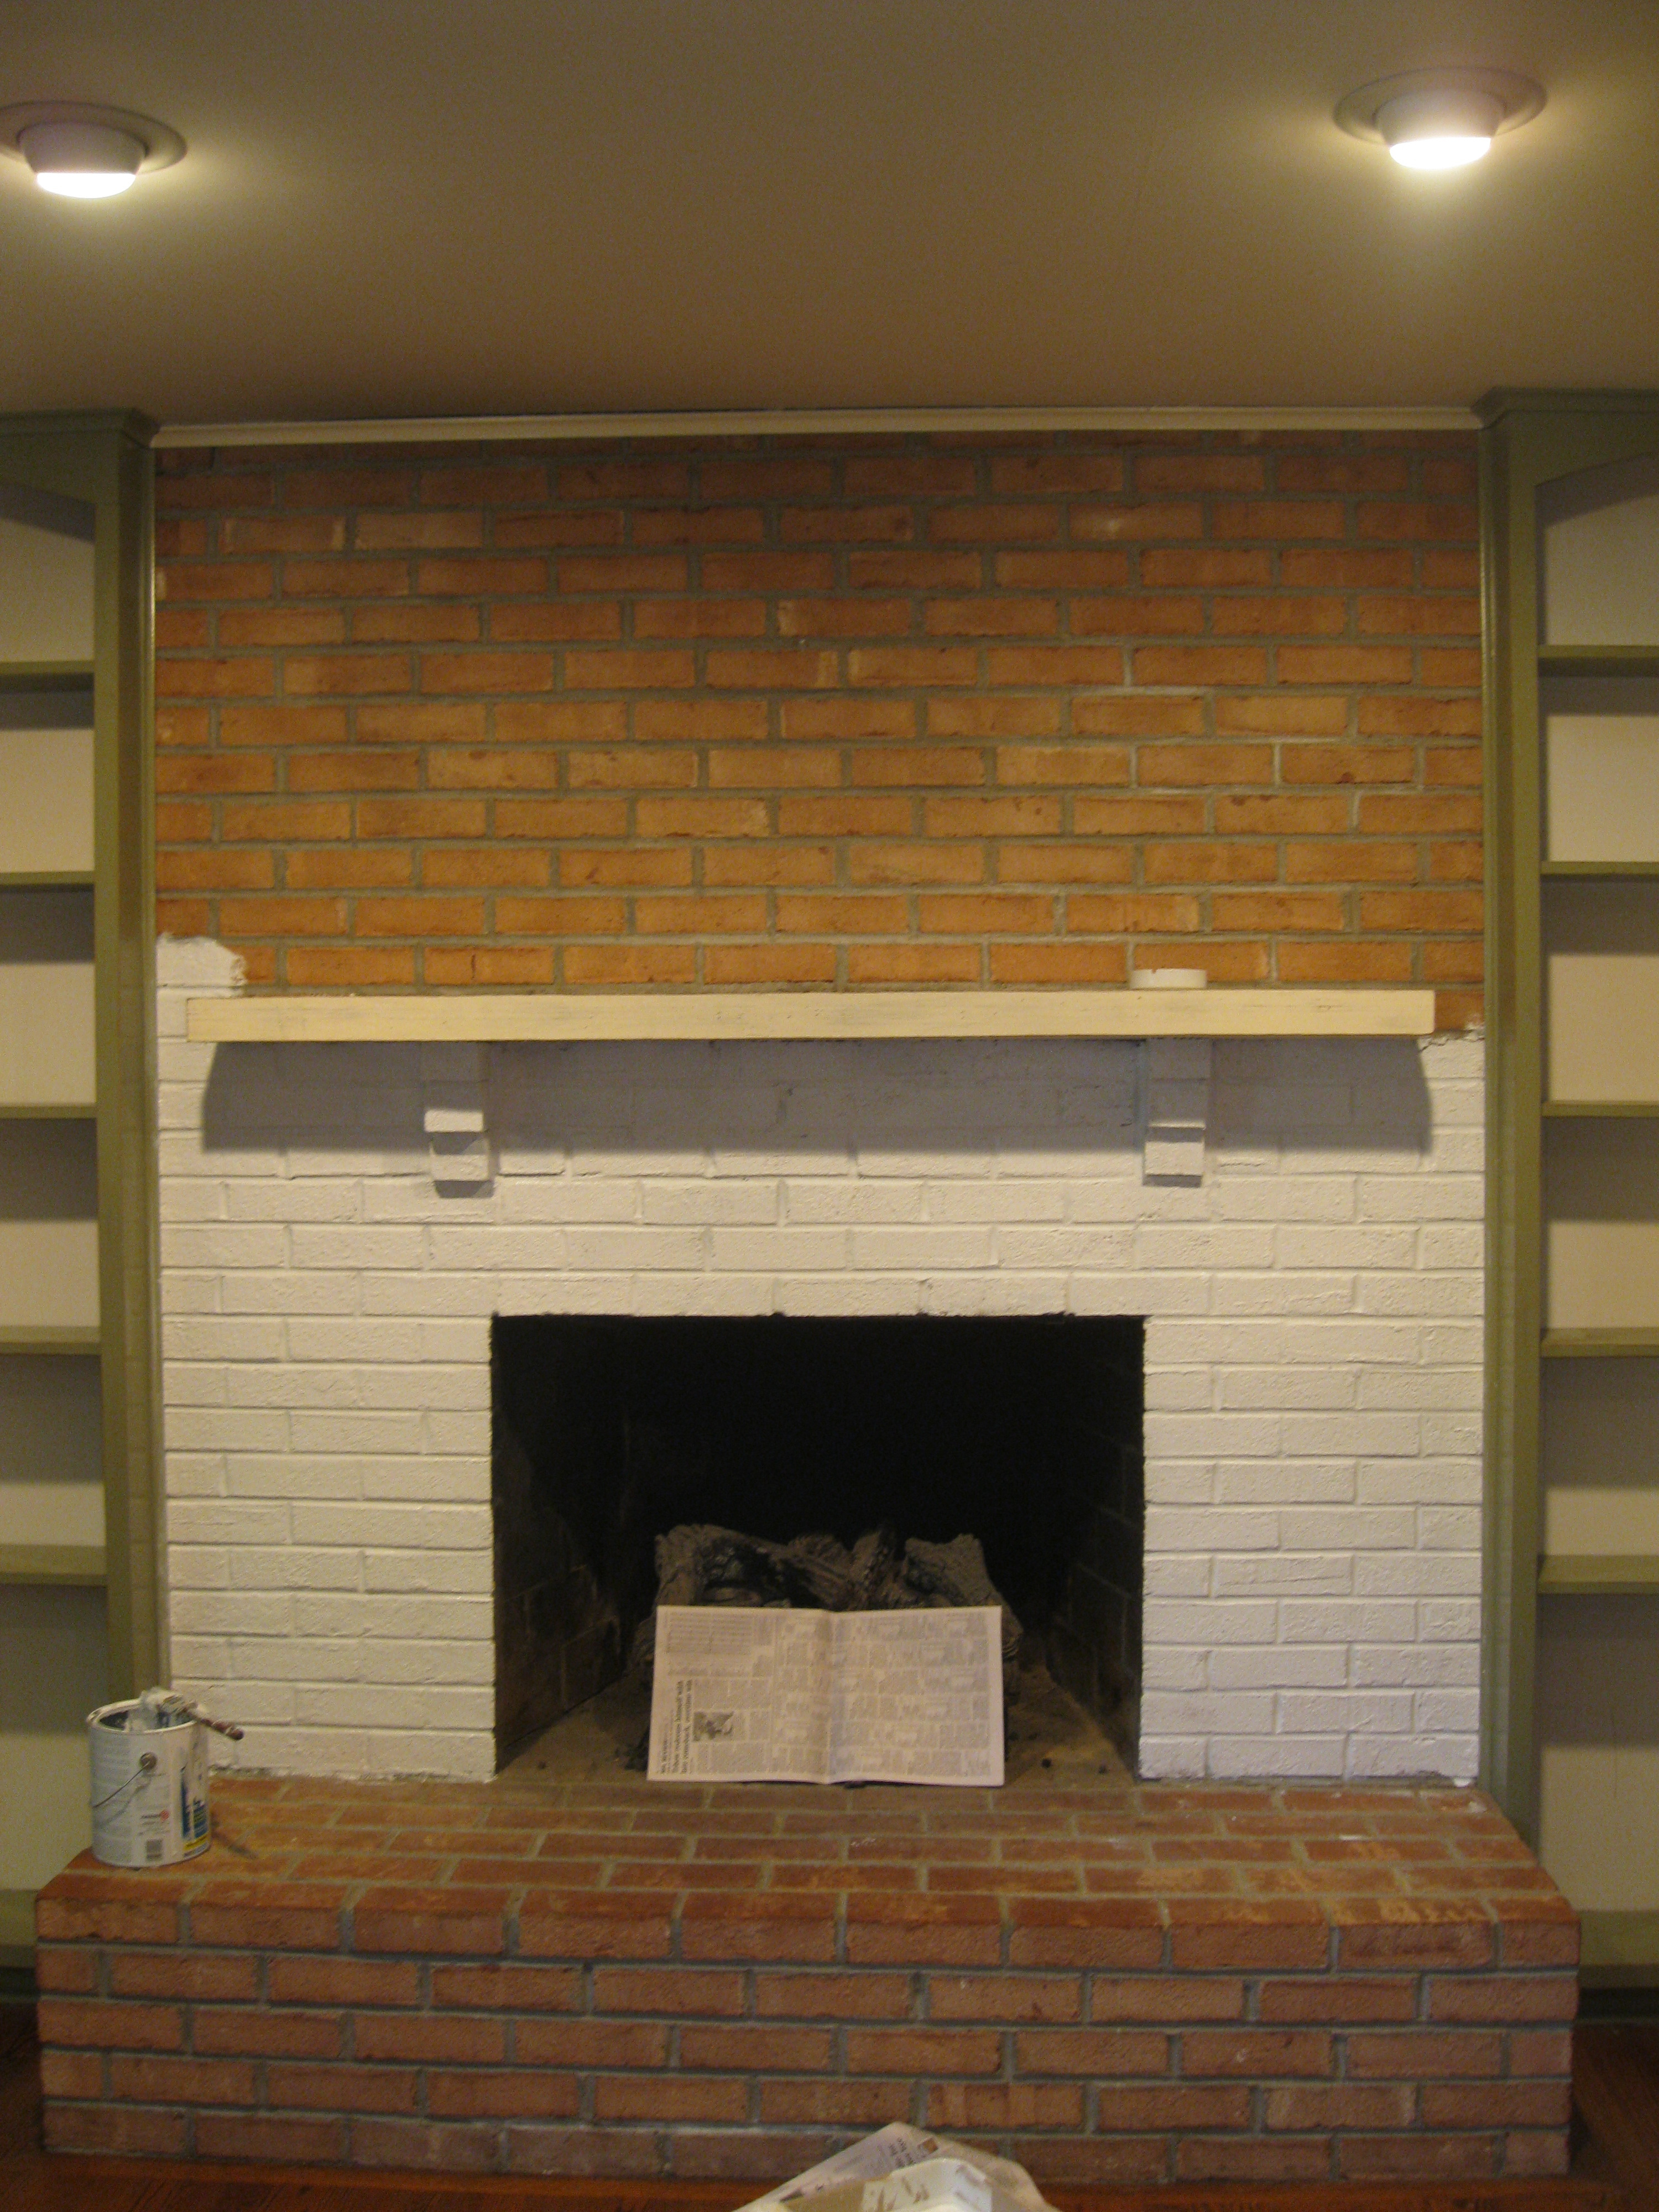 Cover Brick Fireplace With Wood Panels Remodeling A Girl 39s Guide To Diy